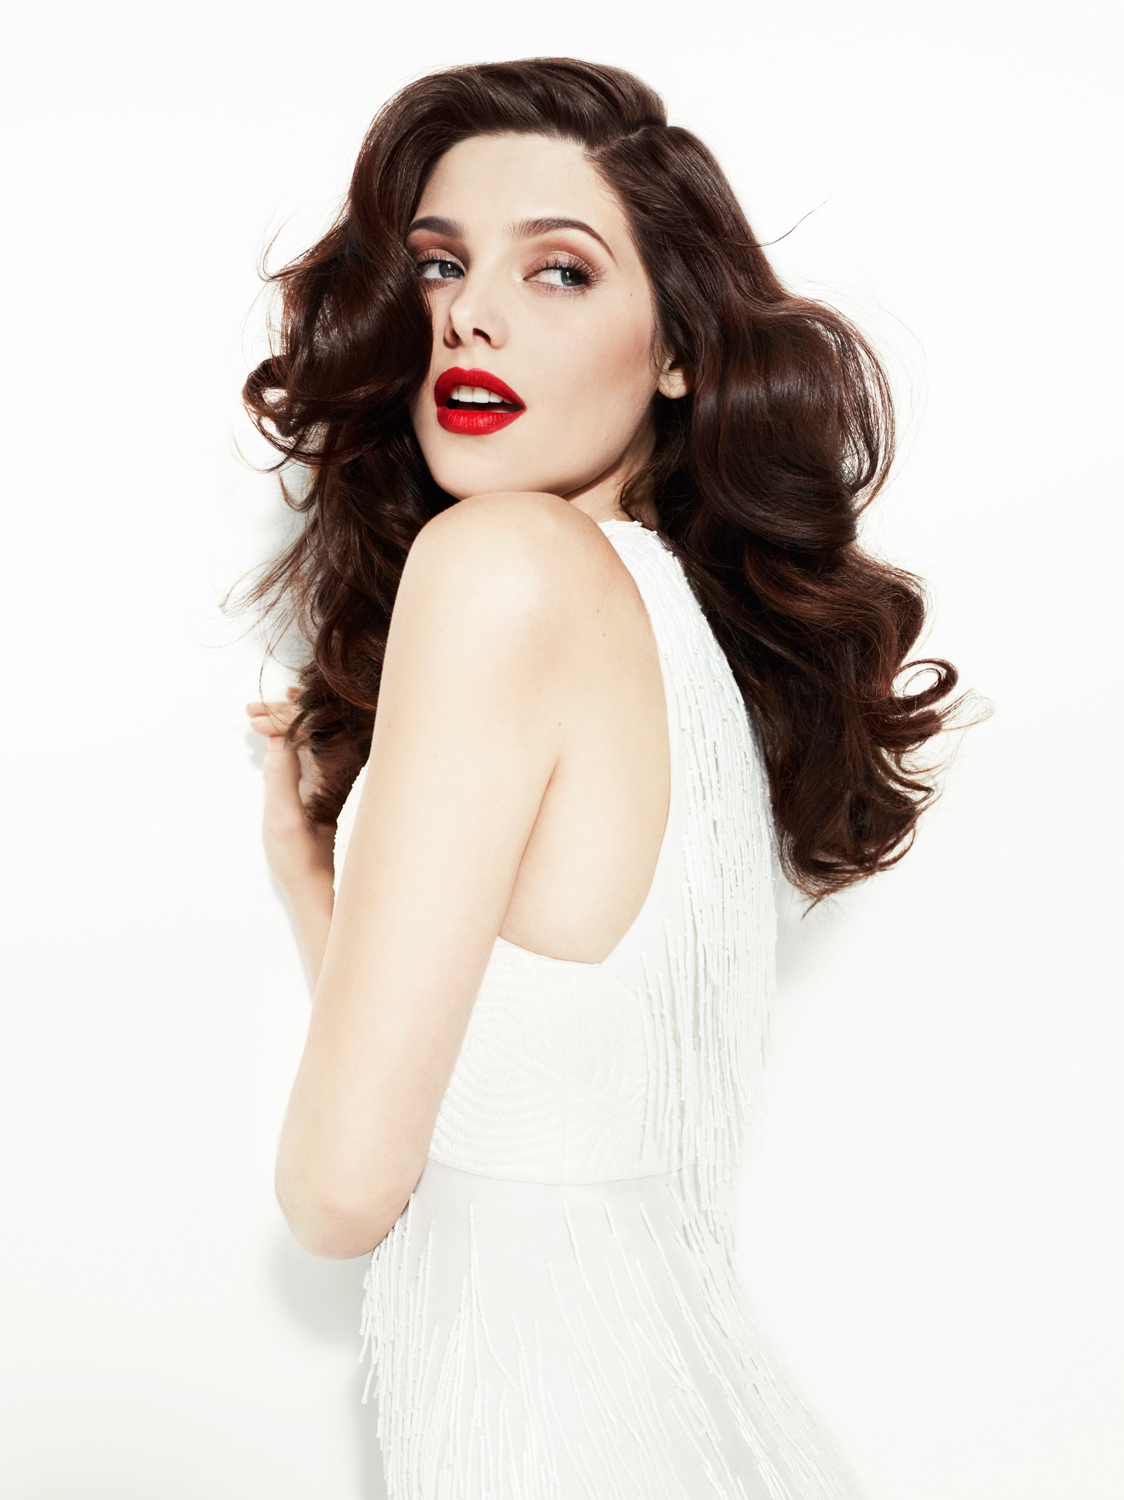 59 images about ashley greene ♥ on We Heart It | See more about ashley  greene and twilight - Ashley Greene PNG